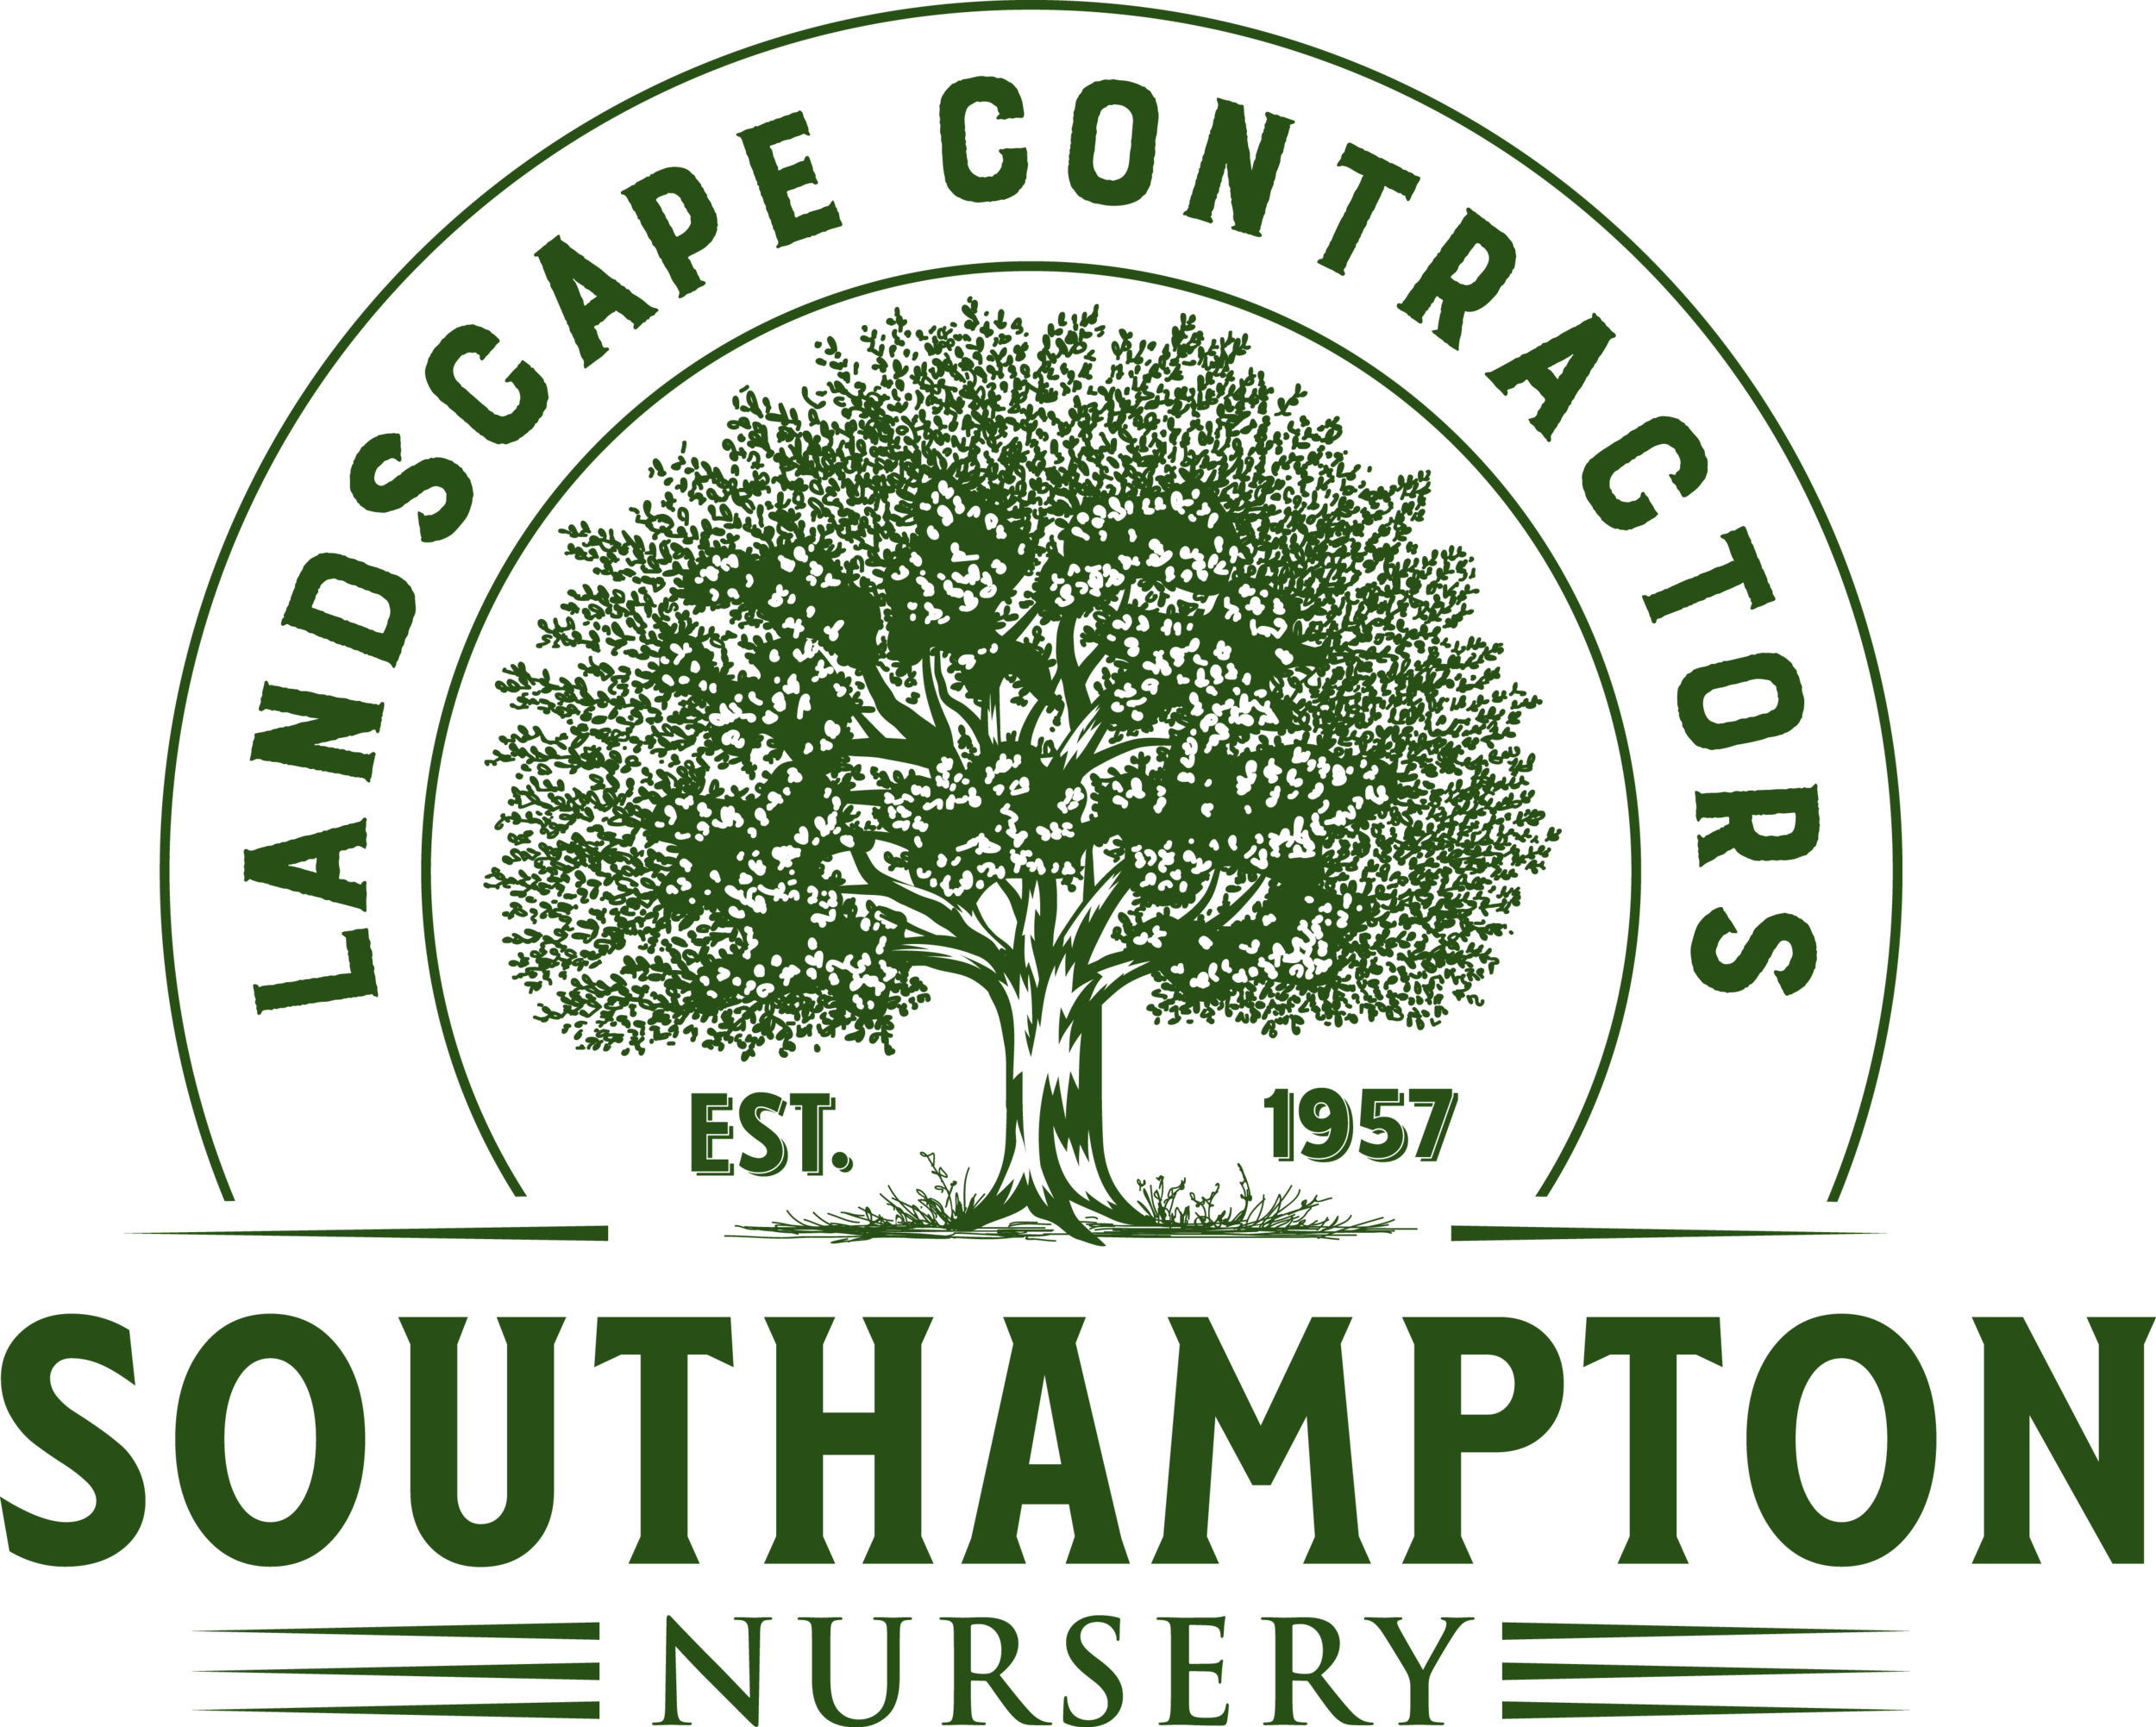 For year-round landscaping services, please visit our sister company   Southampton Nursery   !